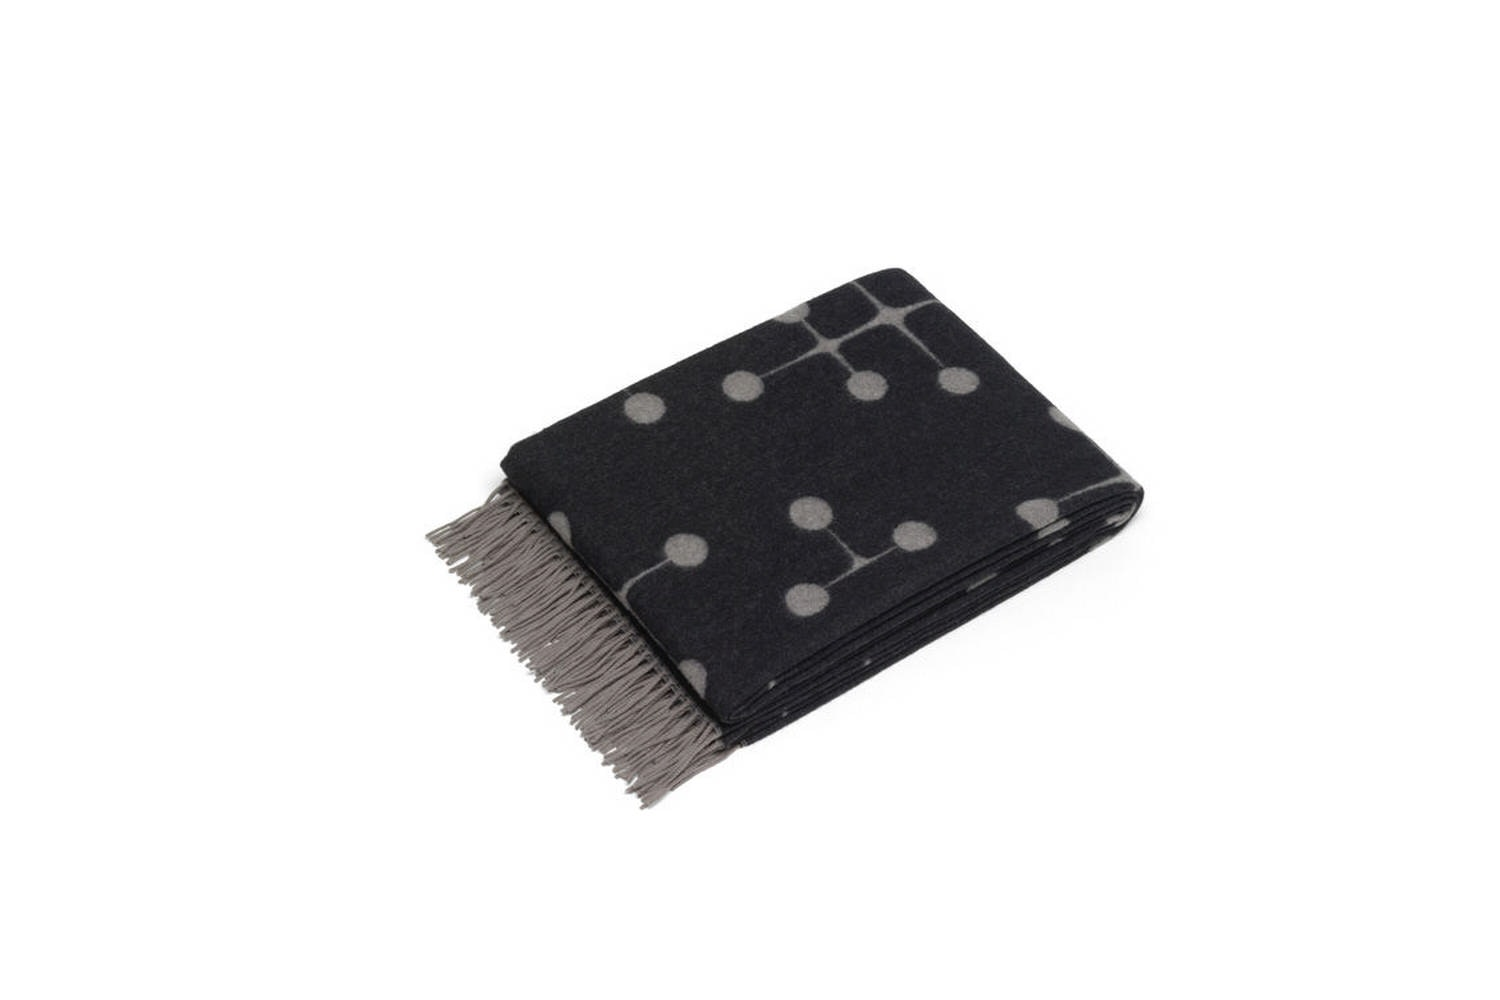 Eames Wool Blanket by Charles & Ray Eames for Vitra